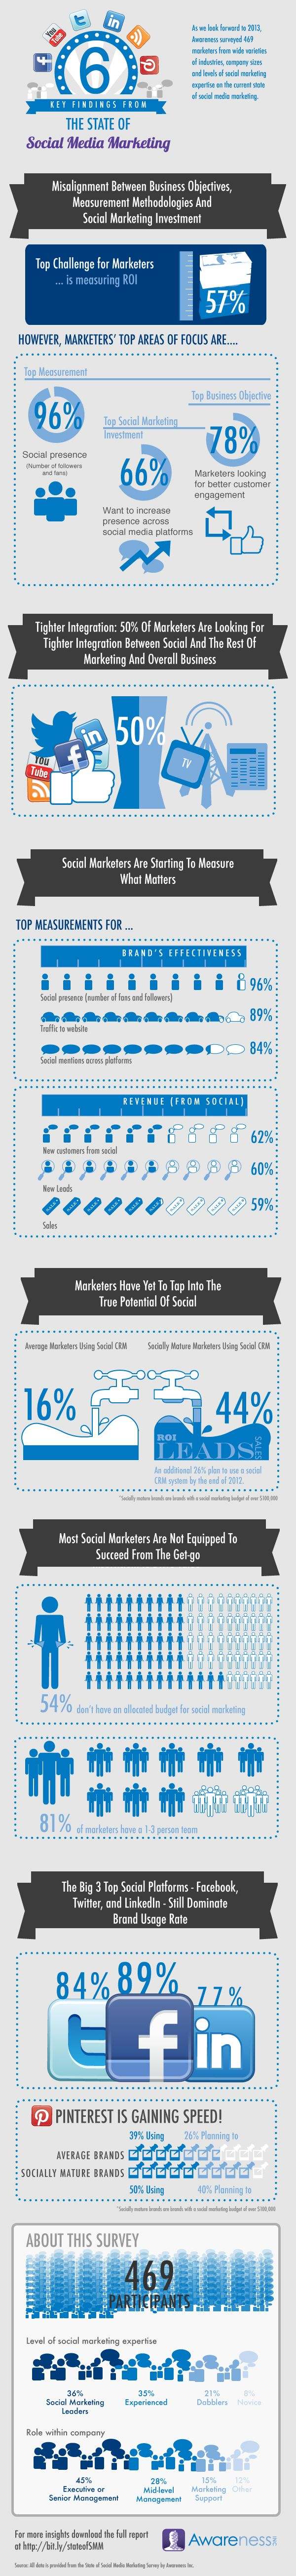 57% Of Marketers Have Trouble Finding Social Media ROI [Infographic]